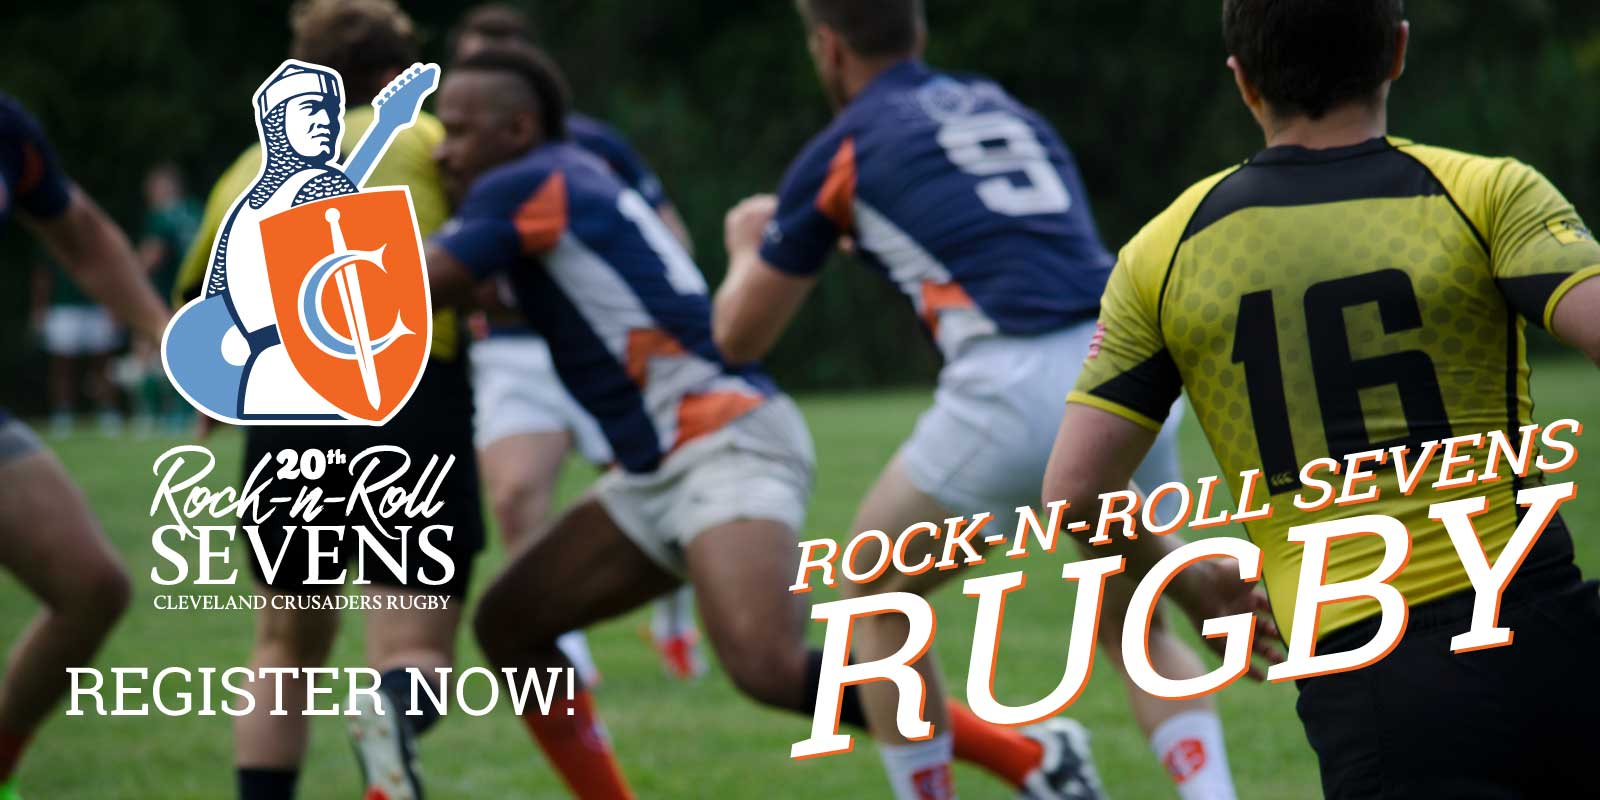 2019 Rock-n-Roll Sevens Rugby Tournament and Festival – REGISTER NOW!